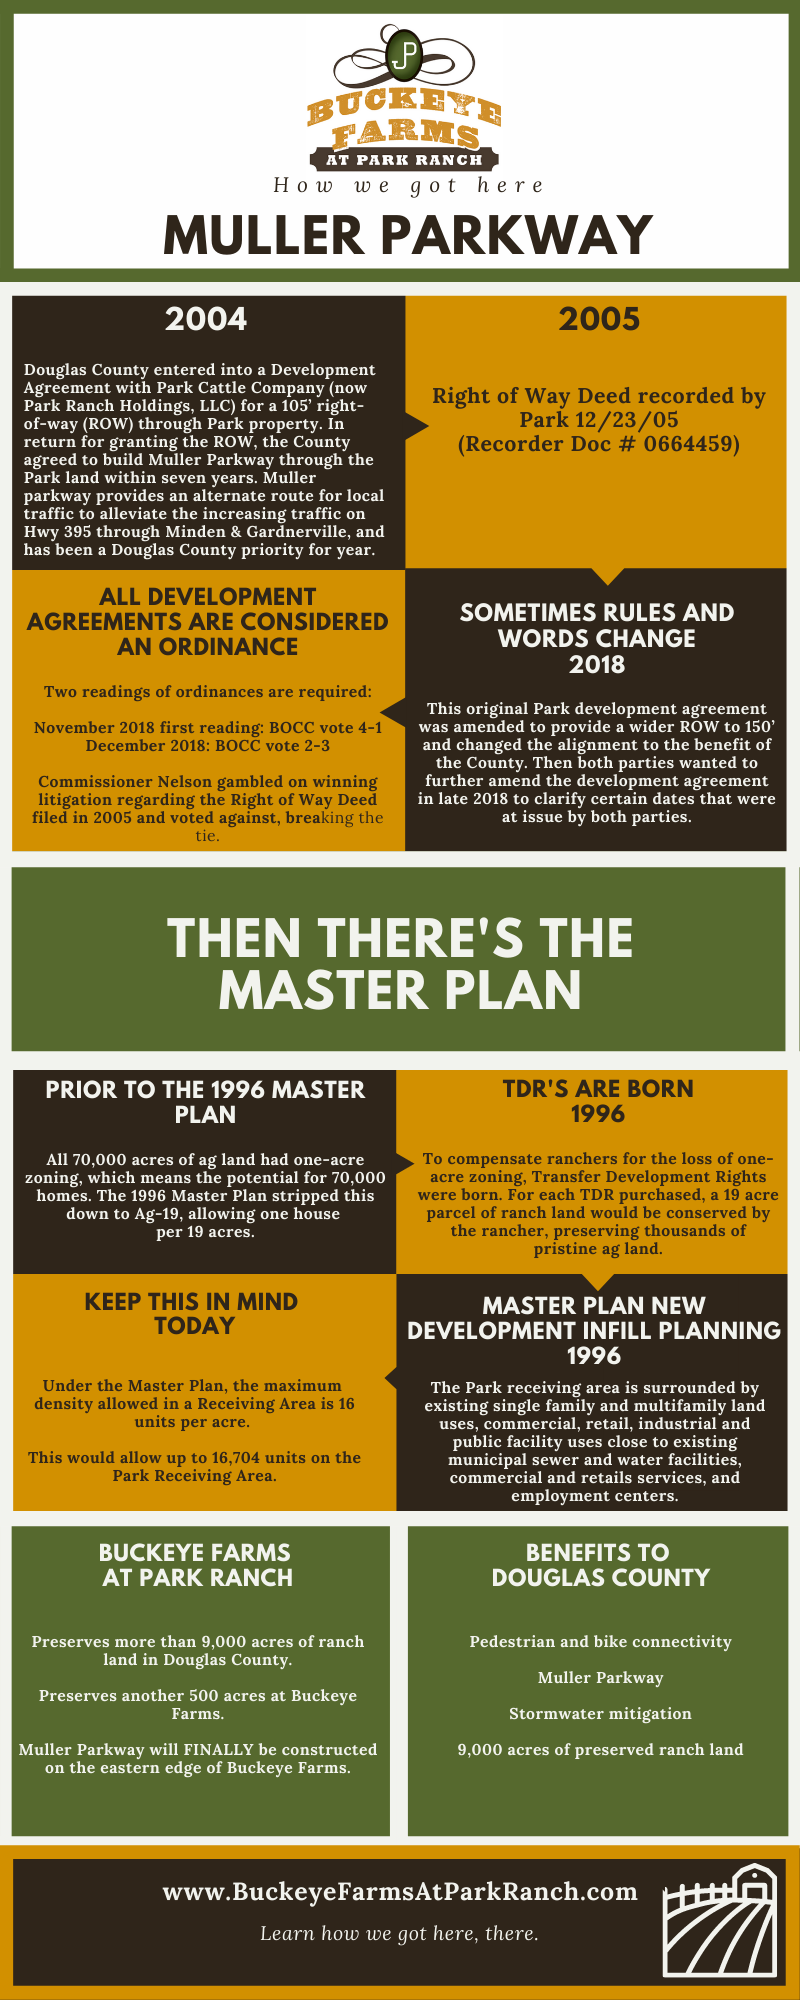 Infographic about Muller Parkway and Couglas County master plan (transcribed below)